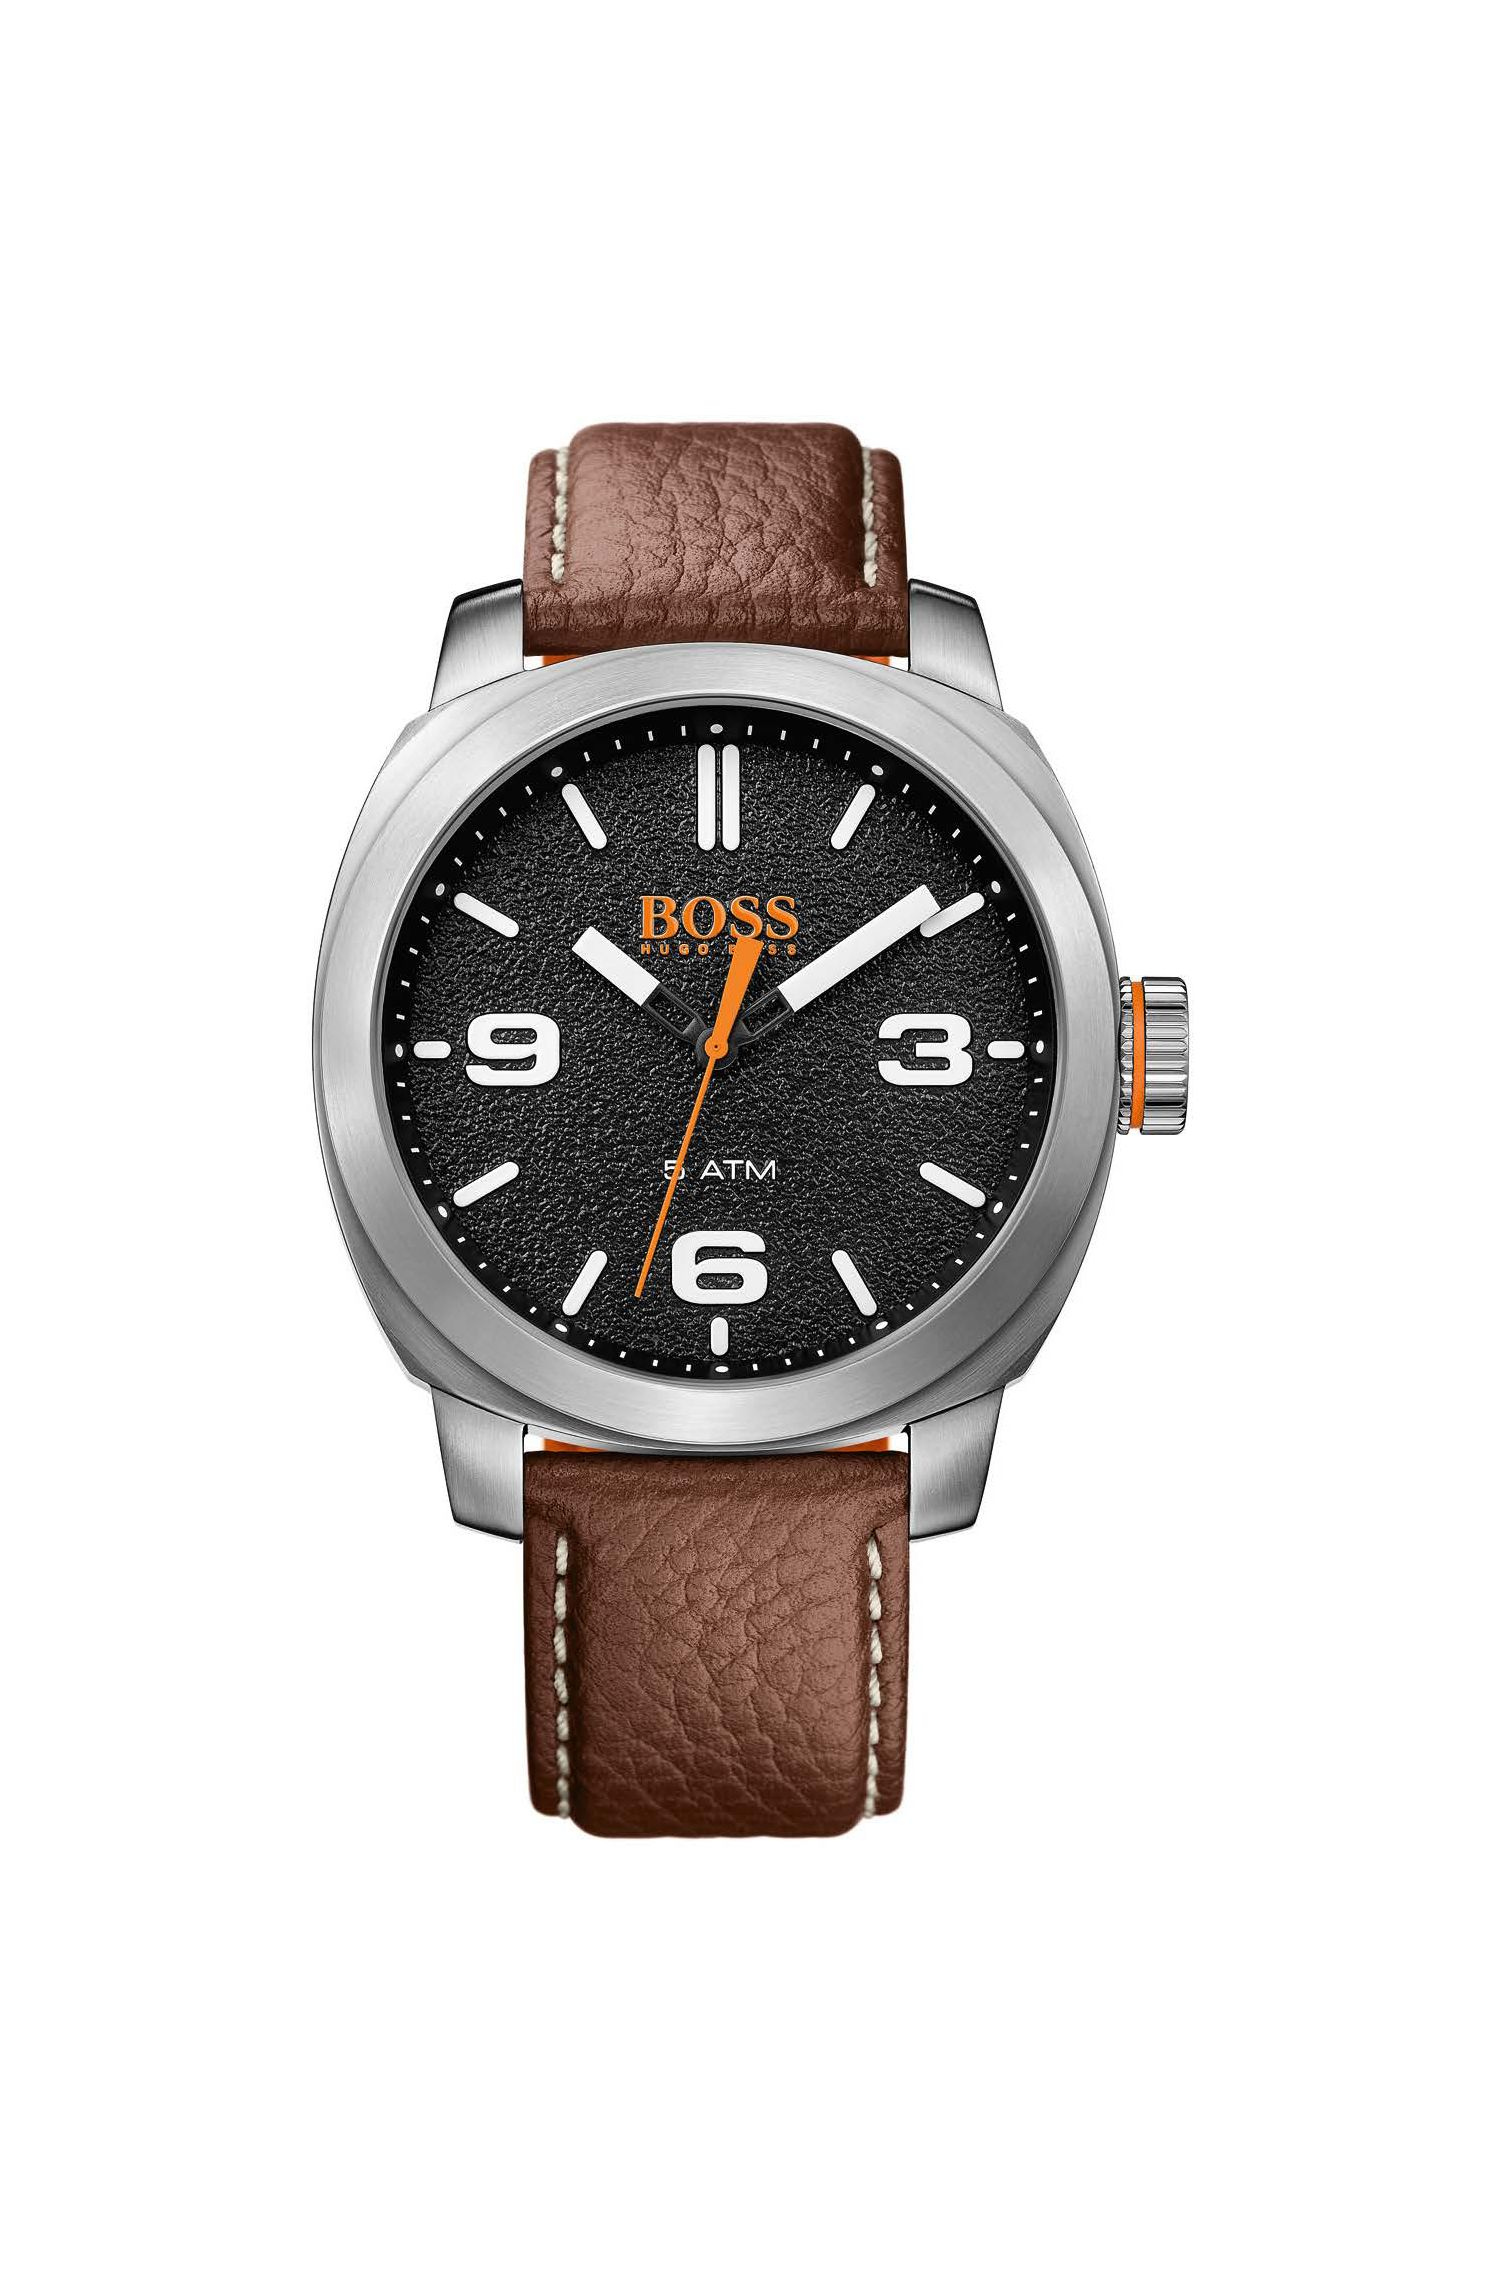 Textured black dial watch with grained leather strap